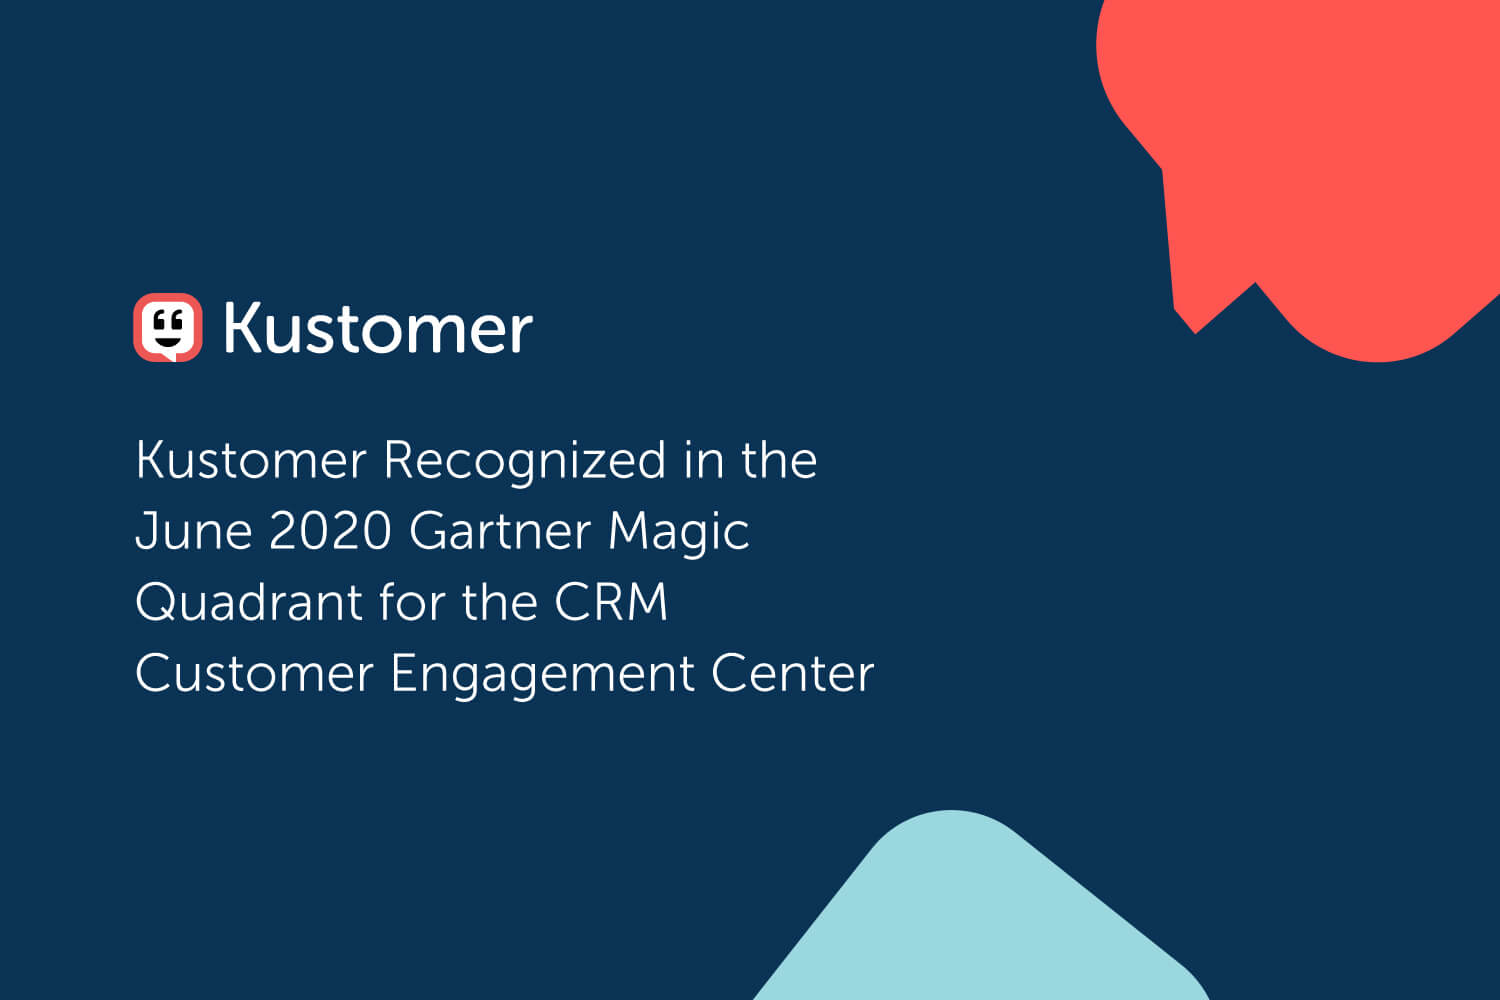 Kustomer Recognized in the June 2020 Gartner Magic Quadrant for the CRM Customer Engagement Center